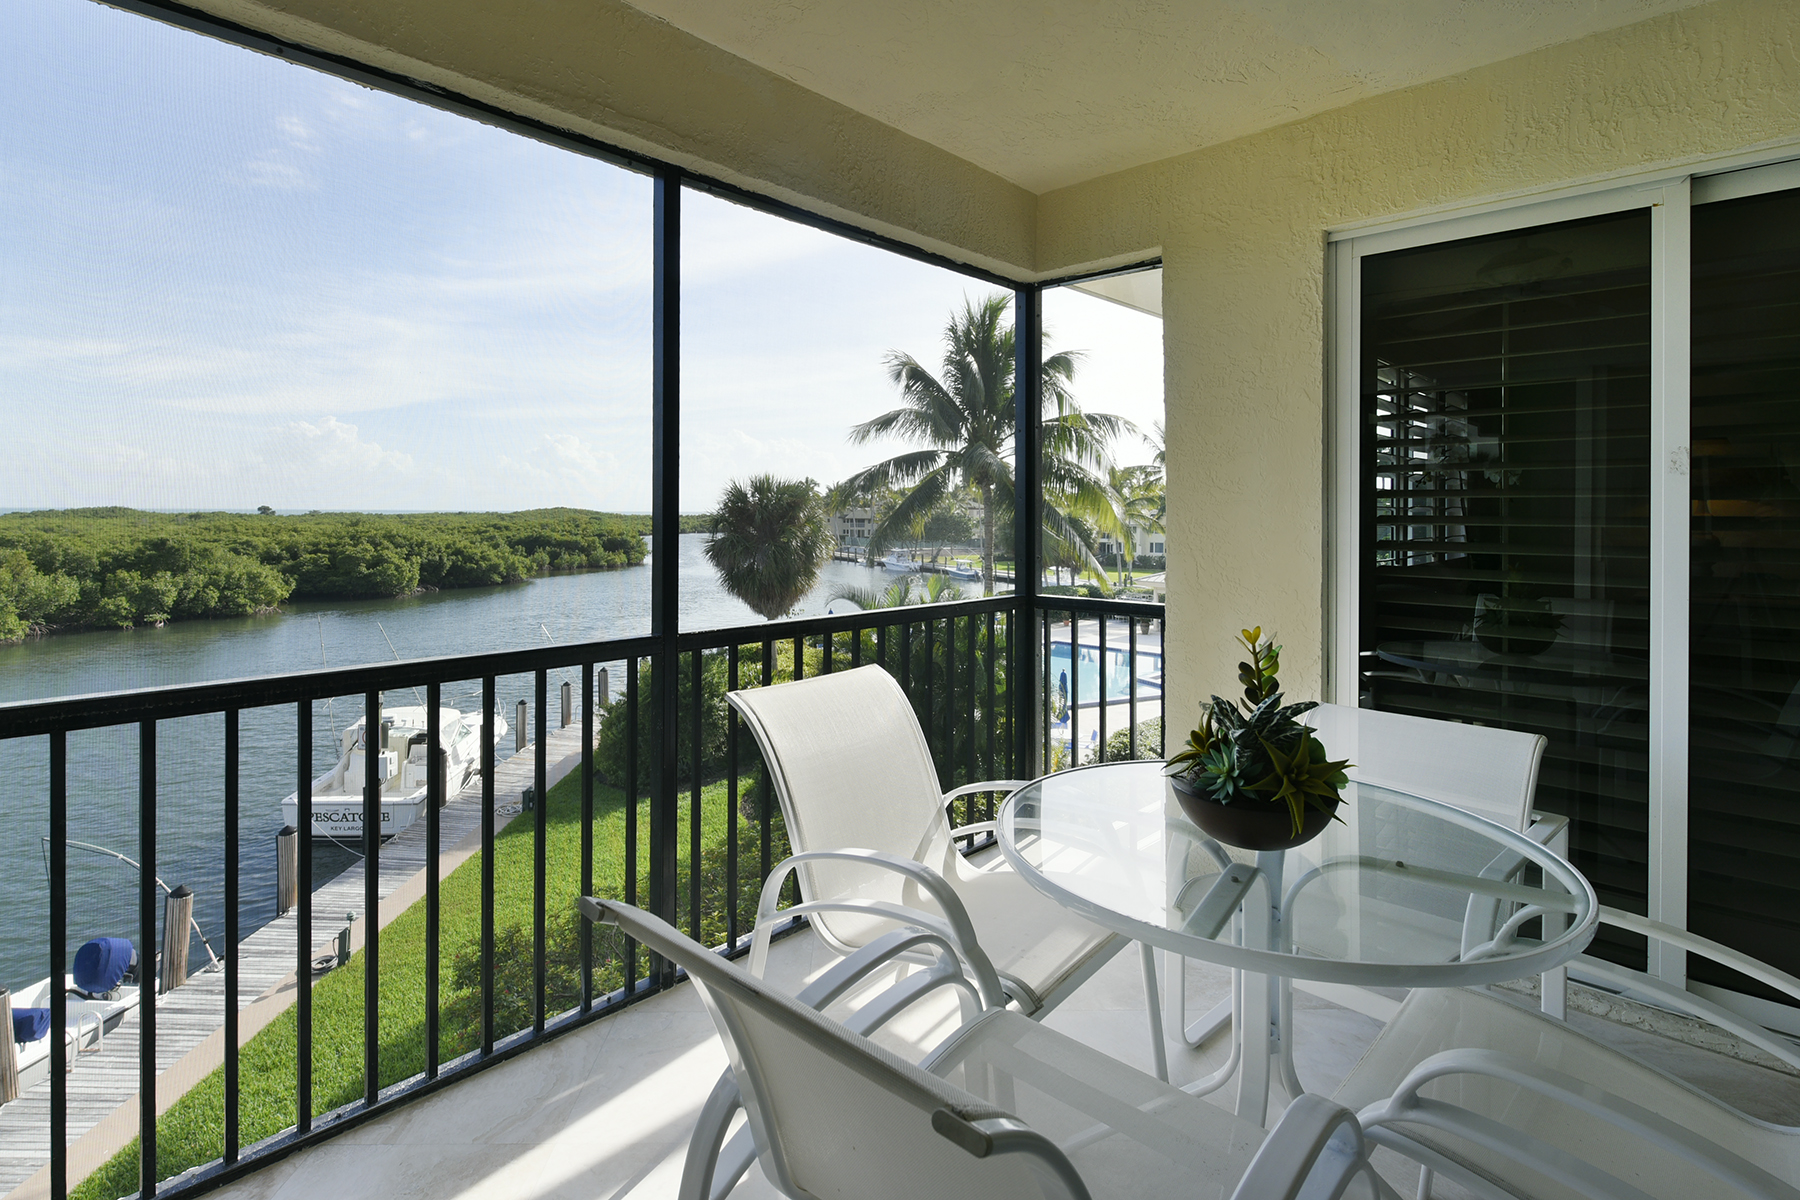 Additional photo for property listing at Creek House Condominium at Ocean Reef 201 Creek House Key Largo, Φλοριντα 33037 Ηνωμενεσ Πολιτειεσ